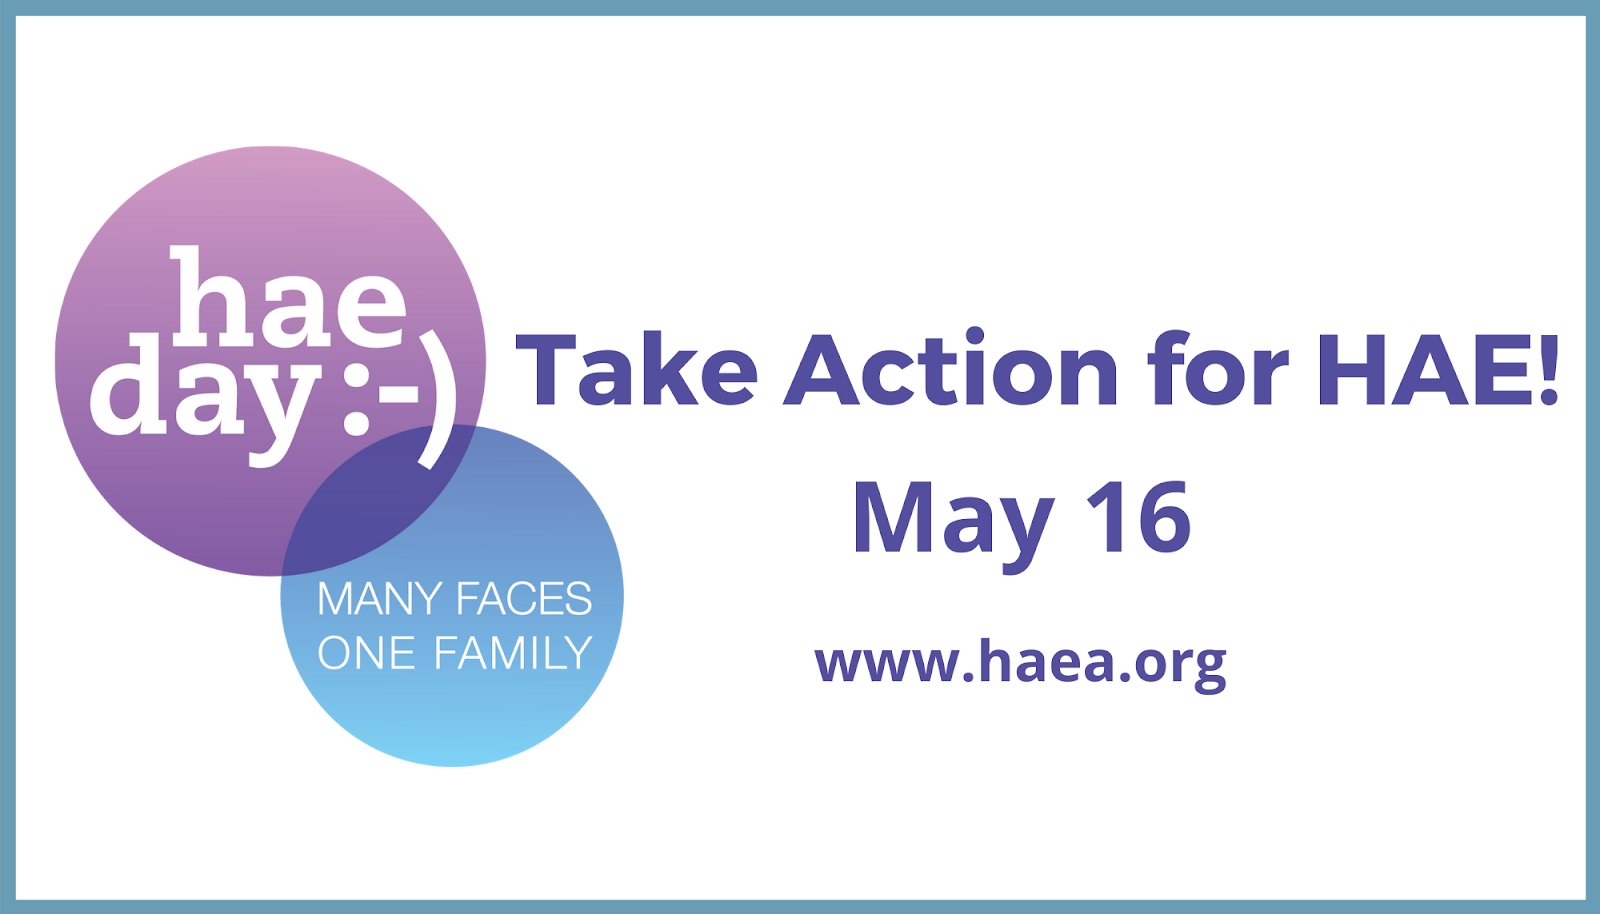 hae day :-) 2021: Our day to Take Action for HAE!